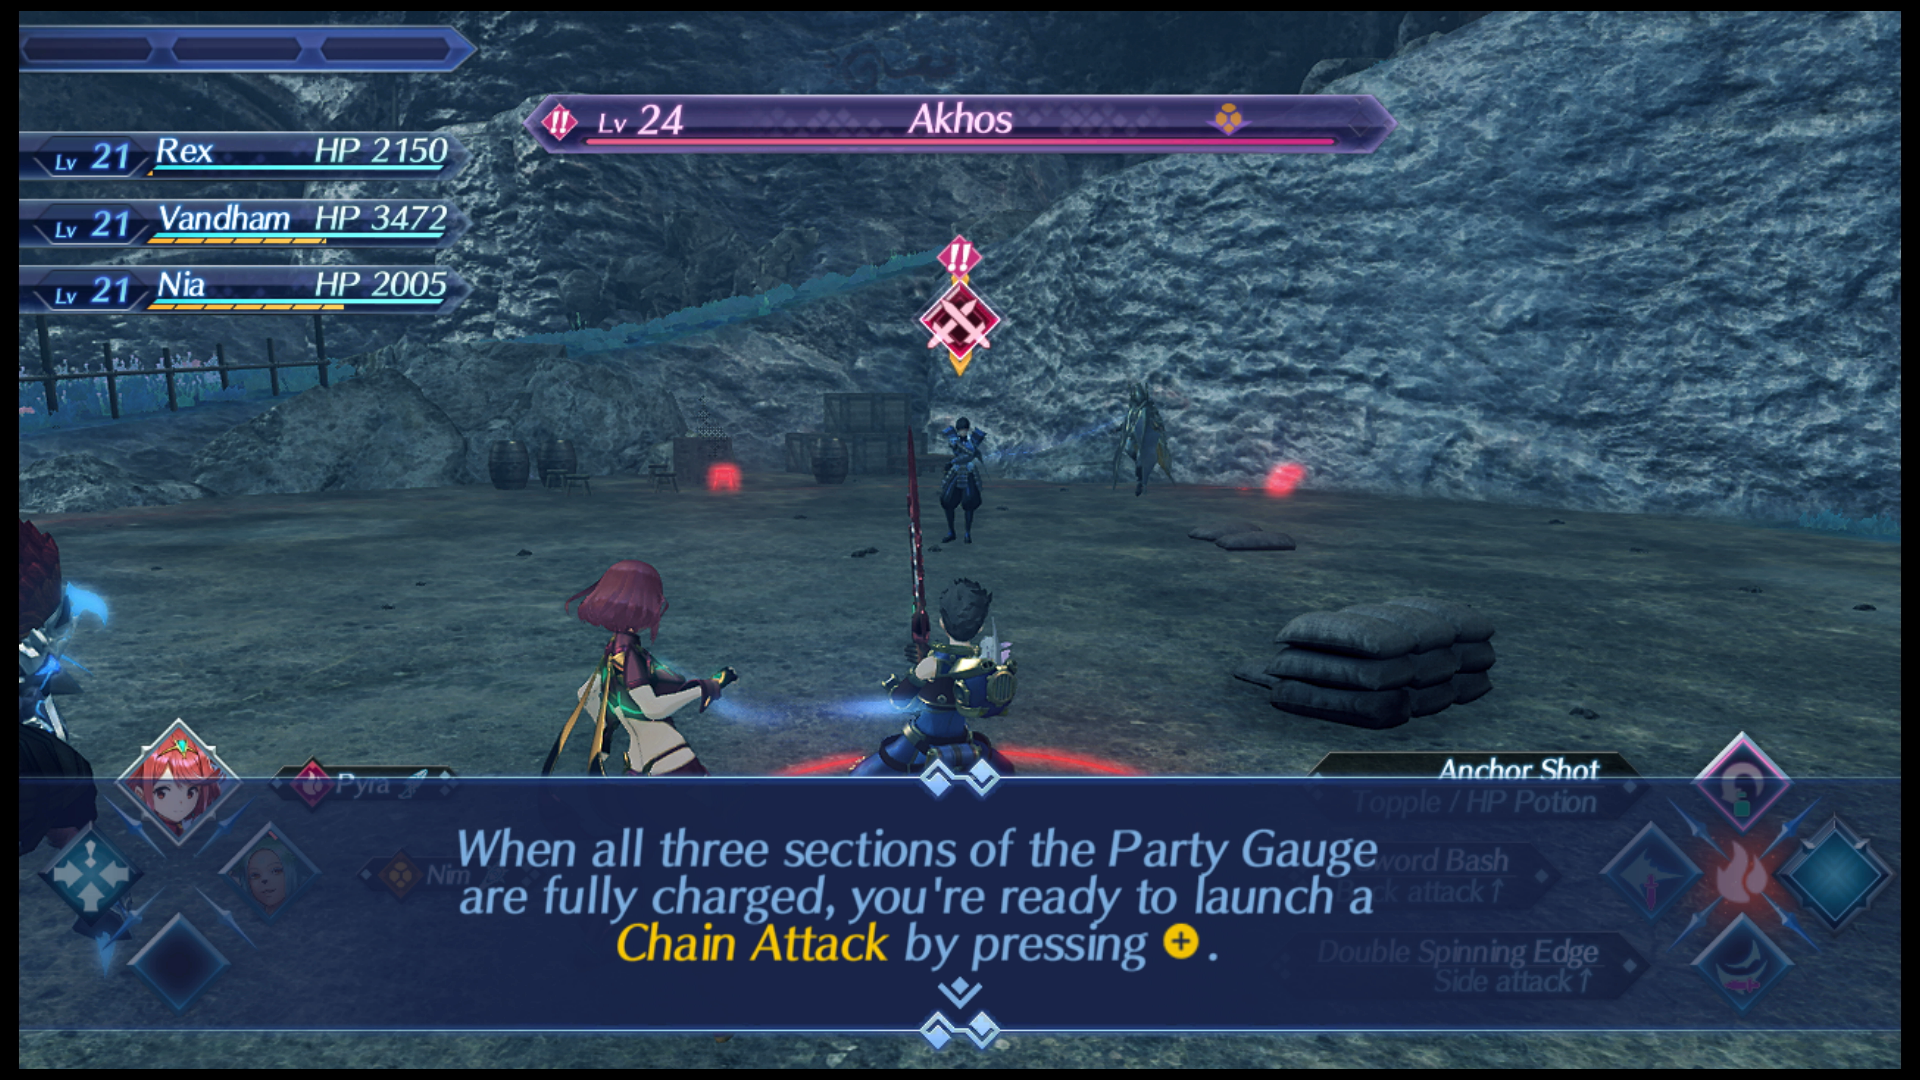 Xenoblade Chronicles 2 Combat System Guide - Combat Tips and Tricks